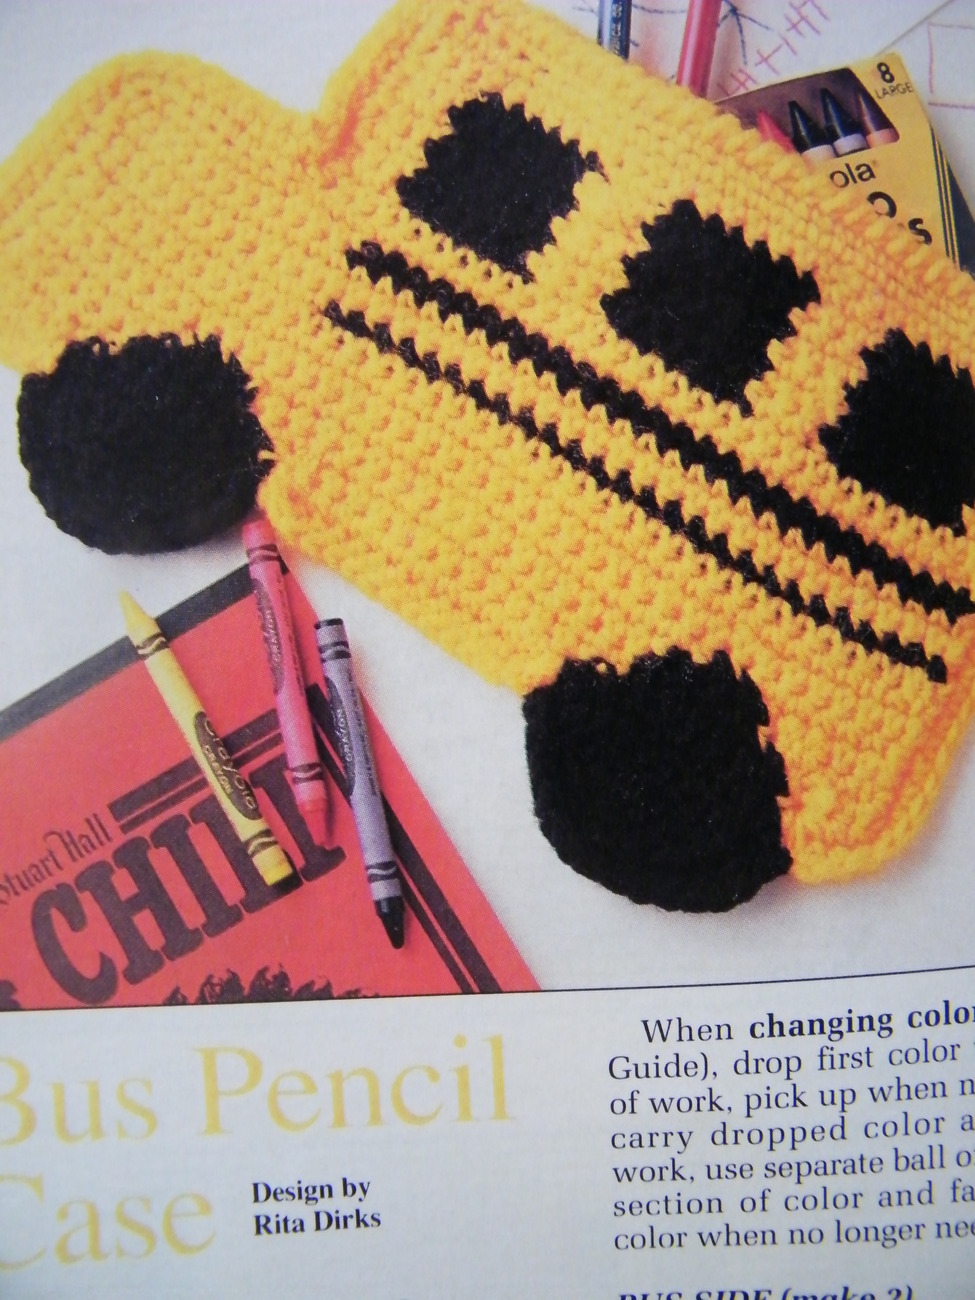 COLORFUL BACK TO SCHOOL BACKPACK CROCHET PATTERN BUS PENCIL CASE APPLE BOOKMARK